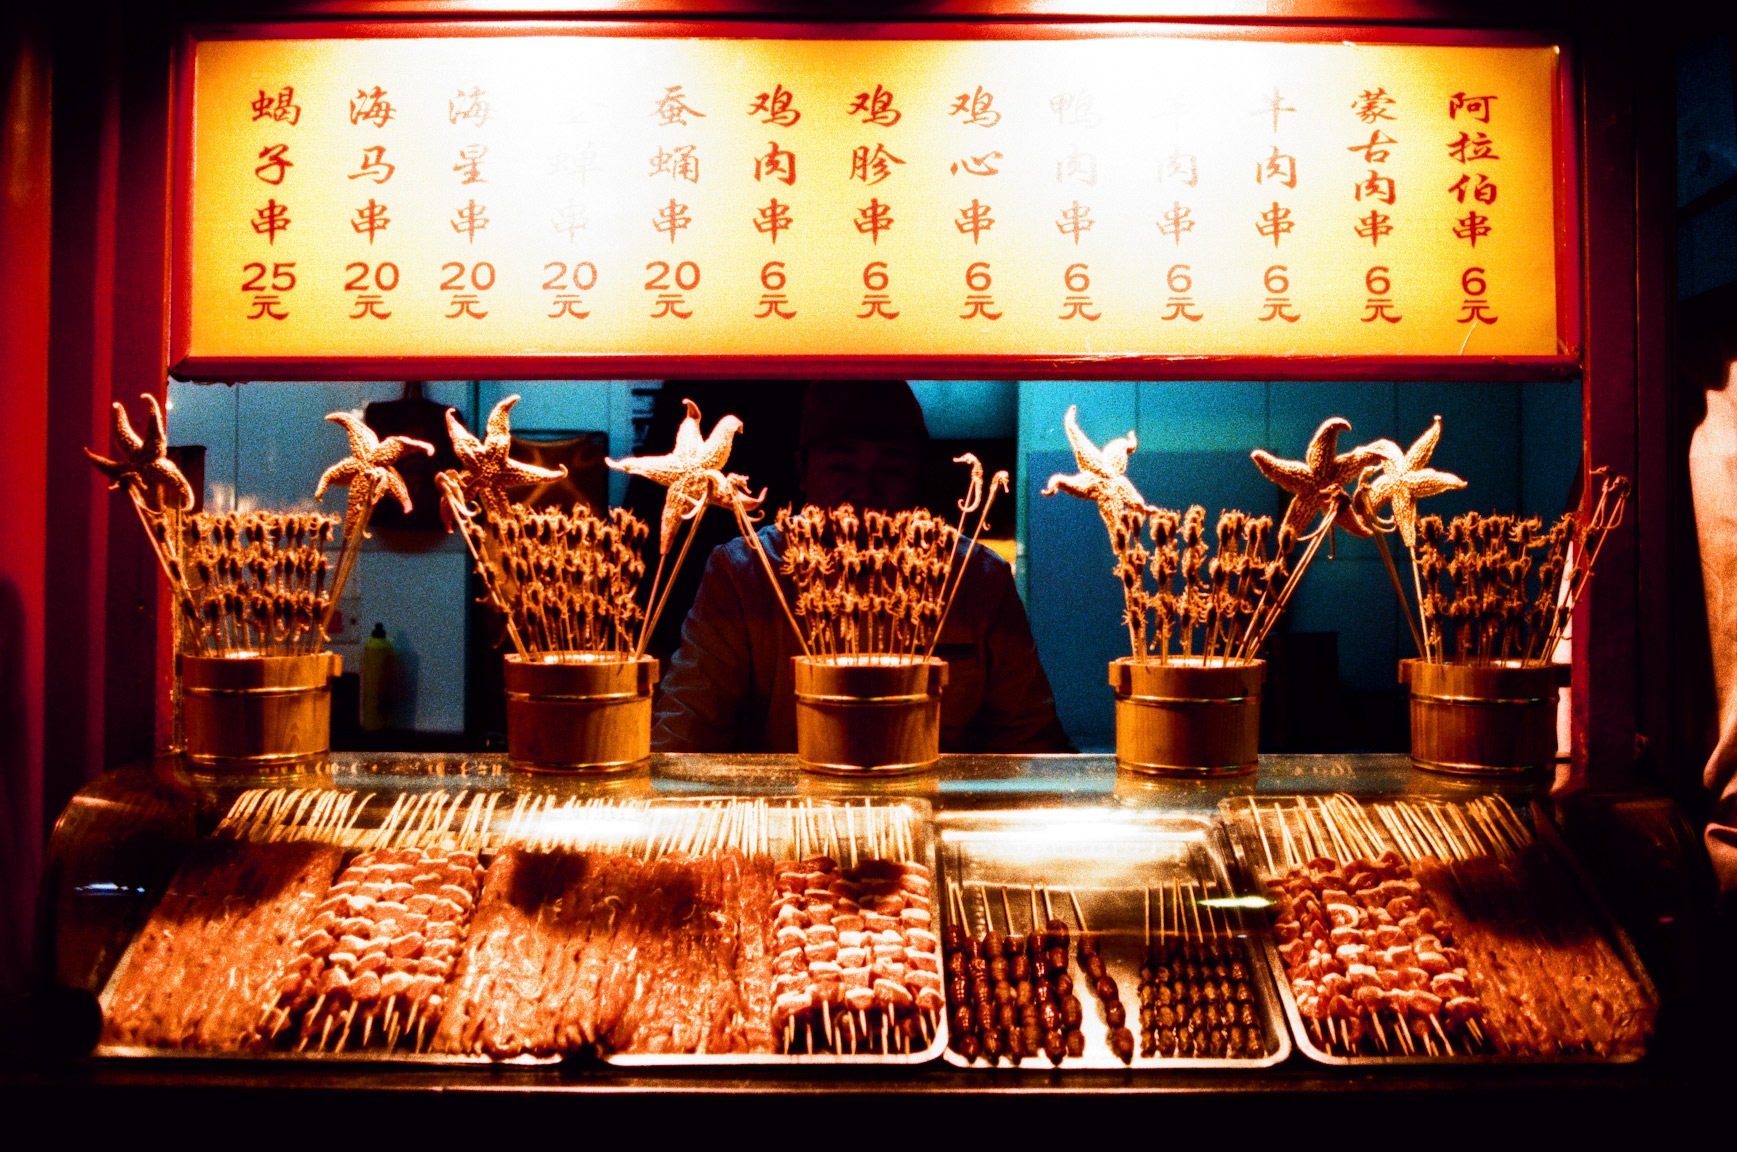 The candy shop, Beijing, China